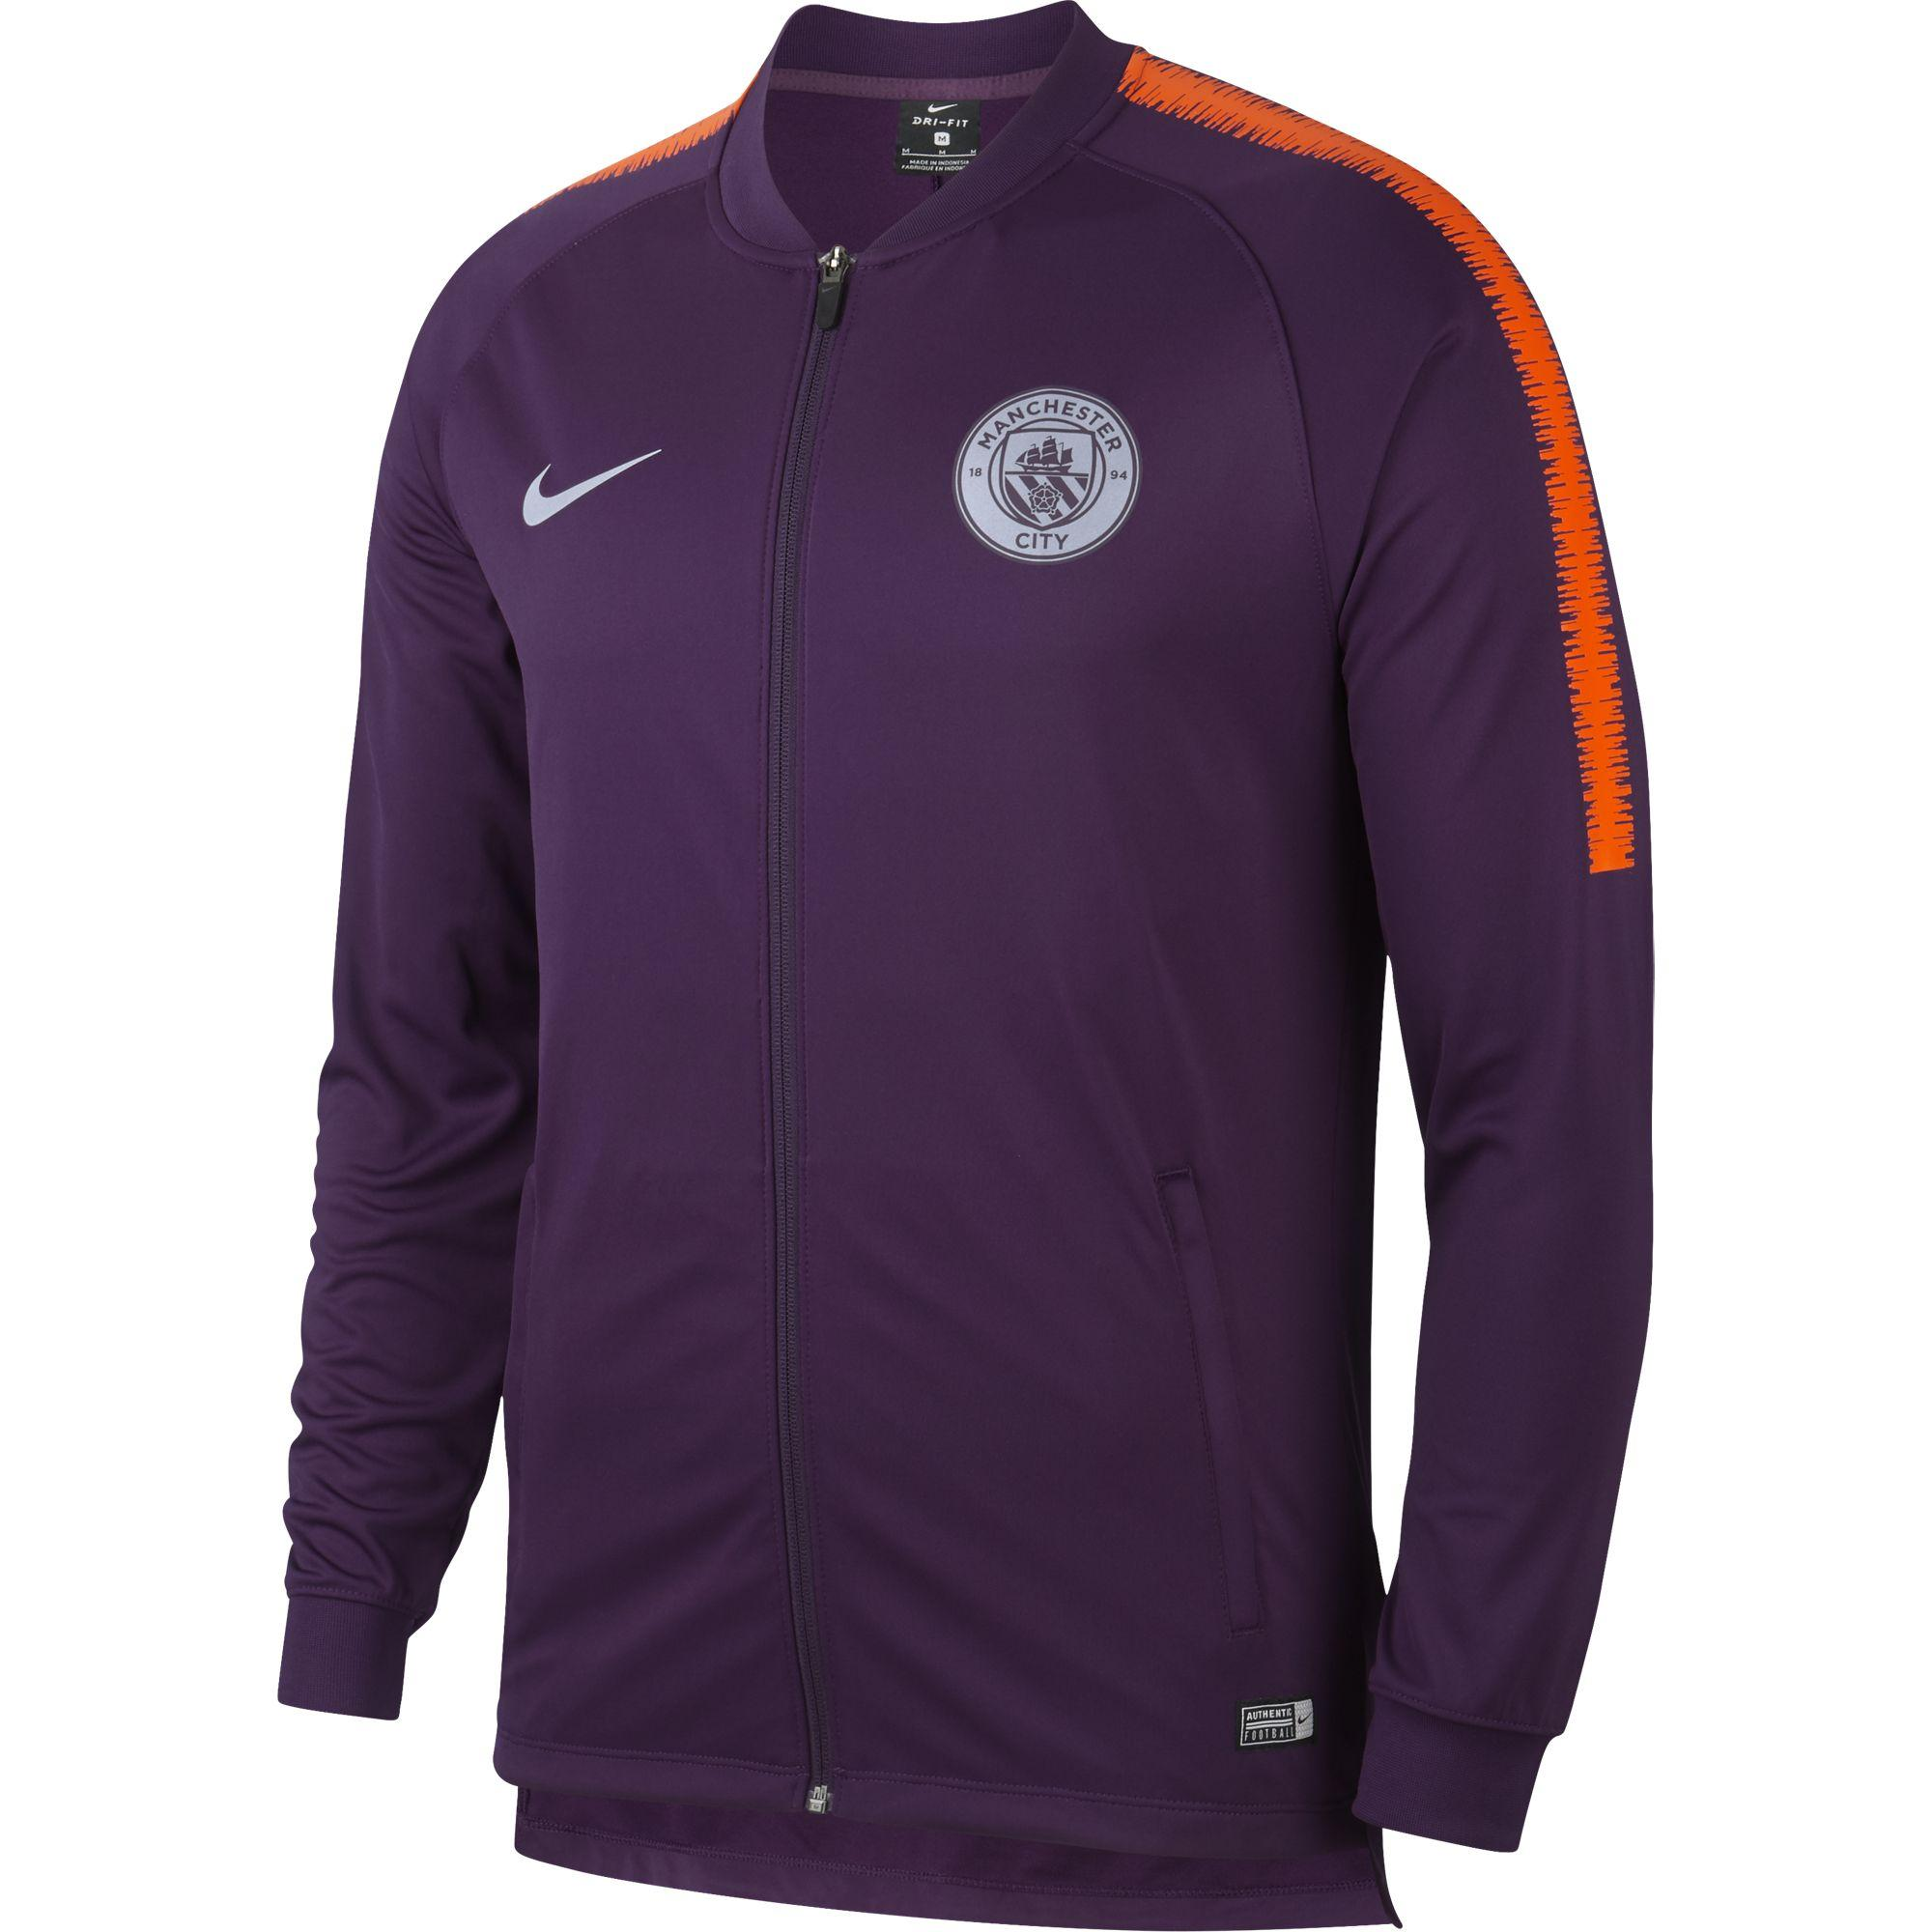 0418050de Nike Sweatshirt Manchester City 18/19 Night Purple/safety Orange ...